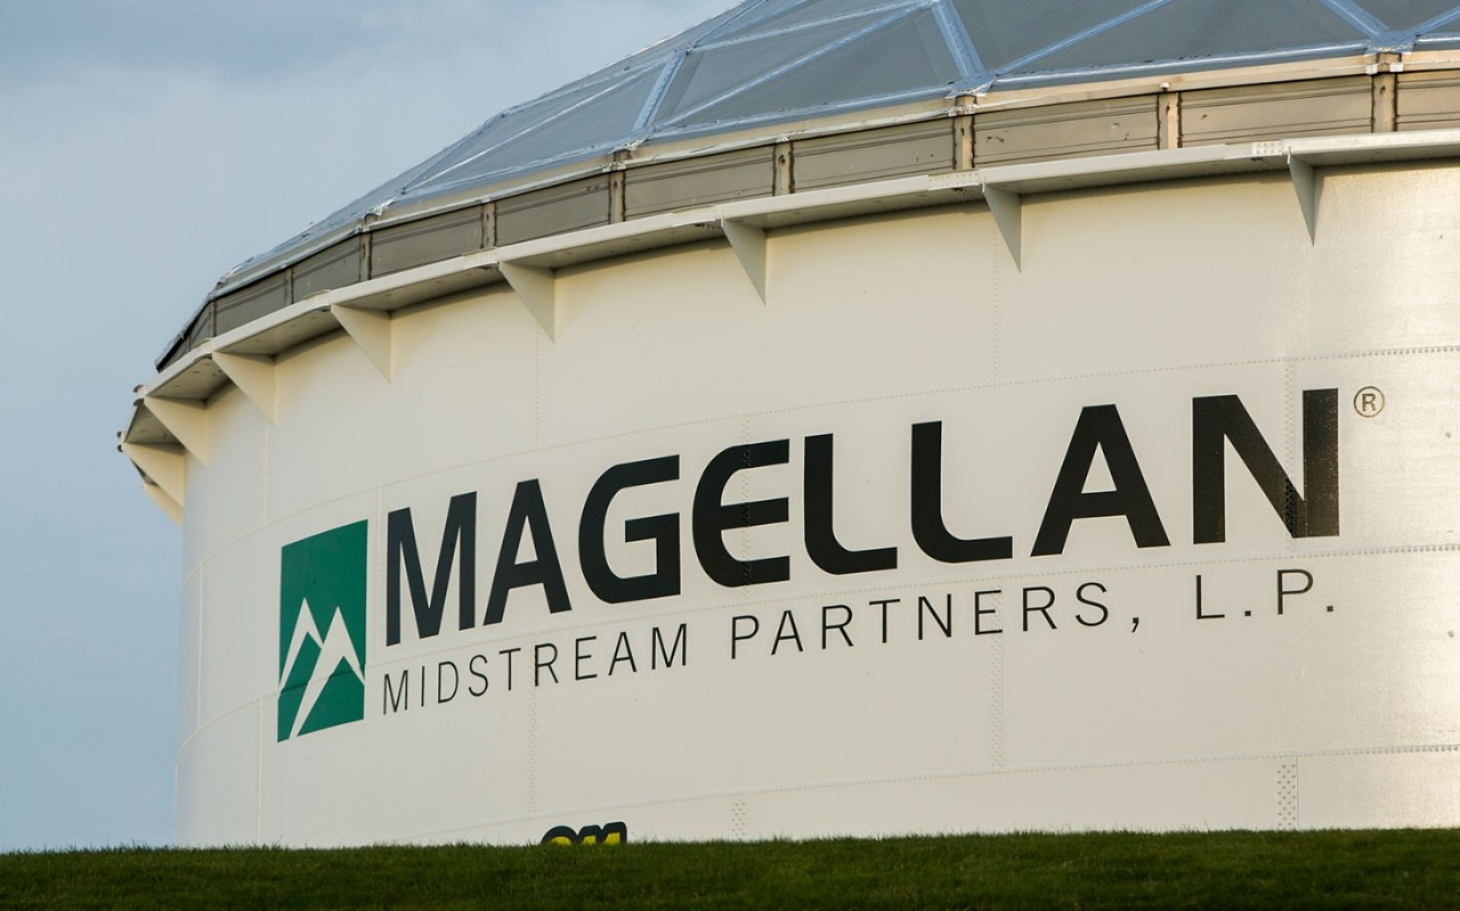 Magellan Pipeline Pays $18 Million to Settle Oil, Diesel and Jet Fuel Spills in Three States, Water Sources Contaminated